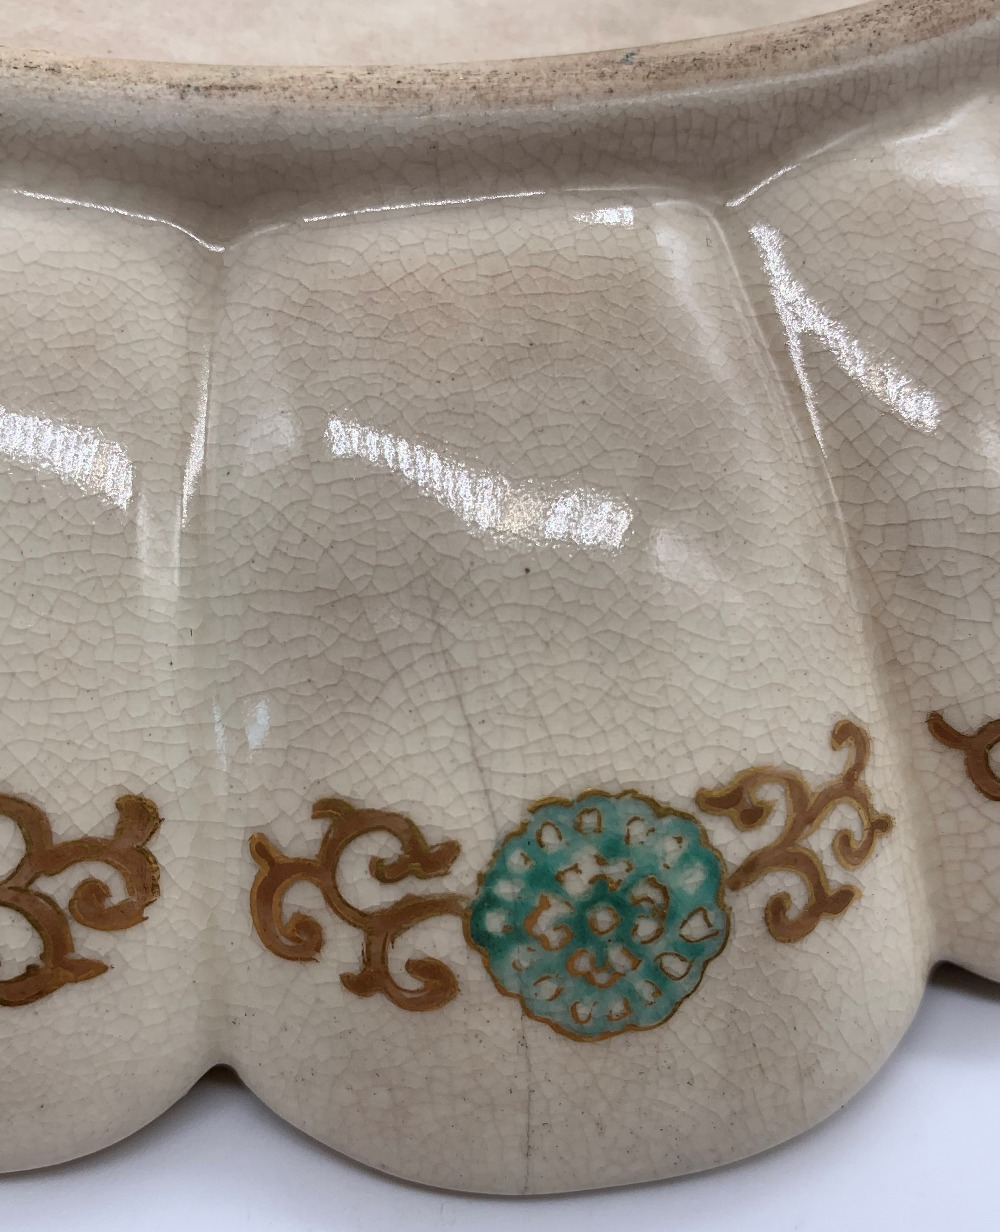 TAIZAN YOHEI; a good Japanese Meiji period Satsuma dish with scallop moulded border and central - Image 6 of 7